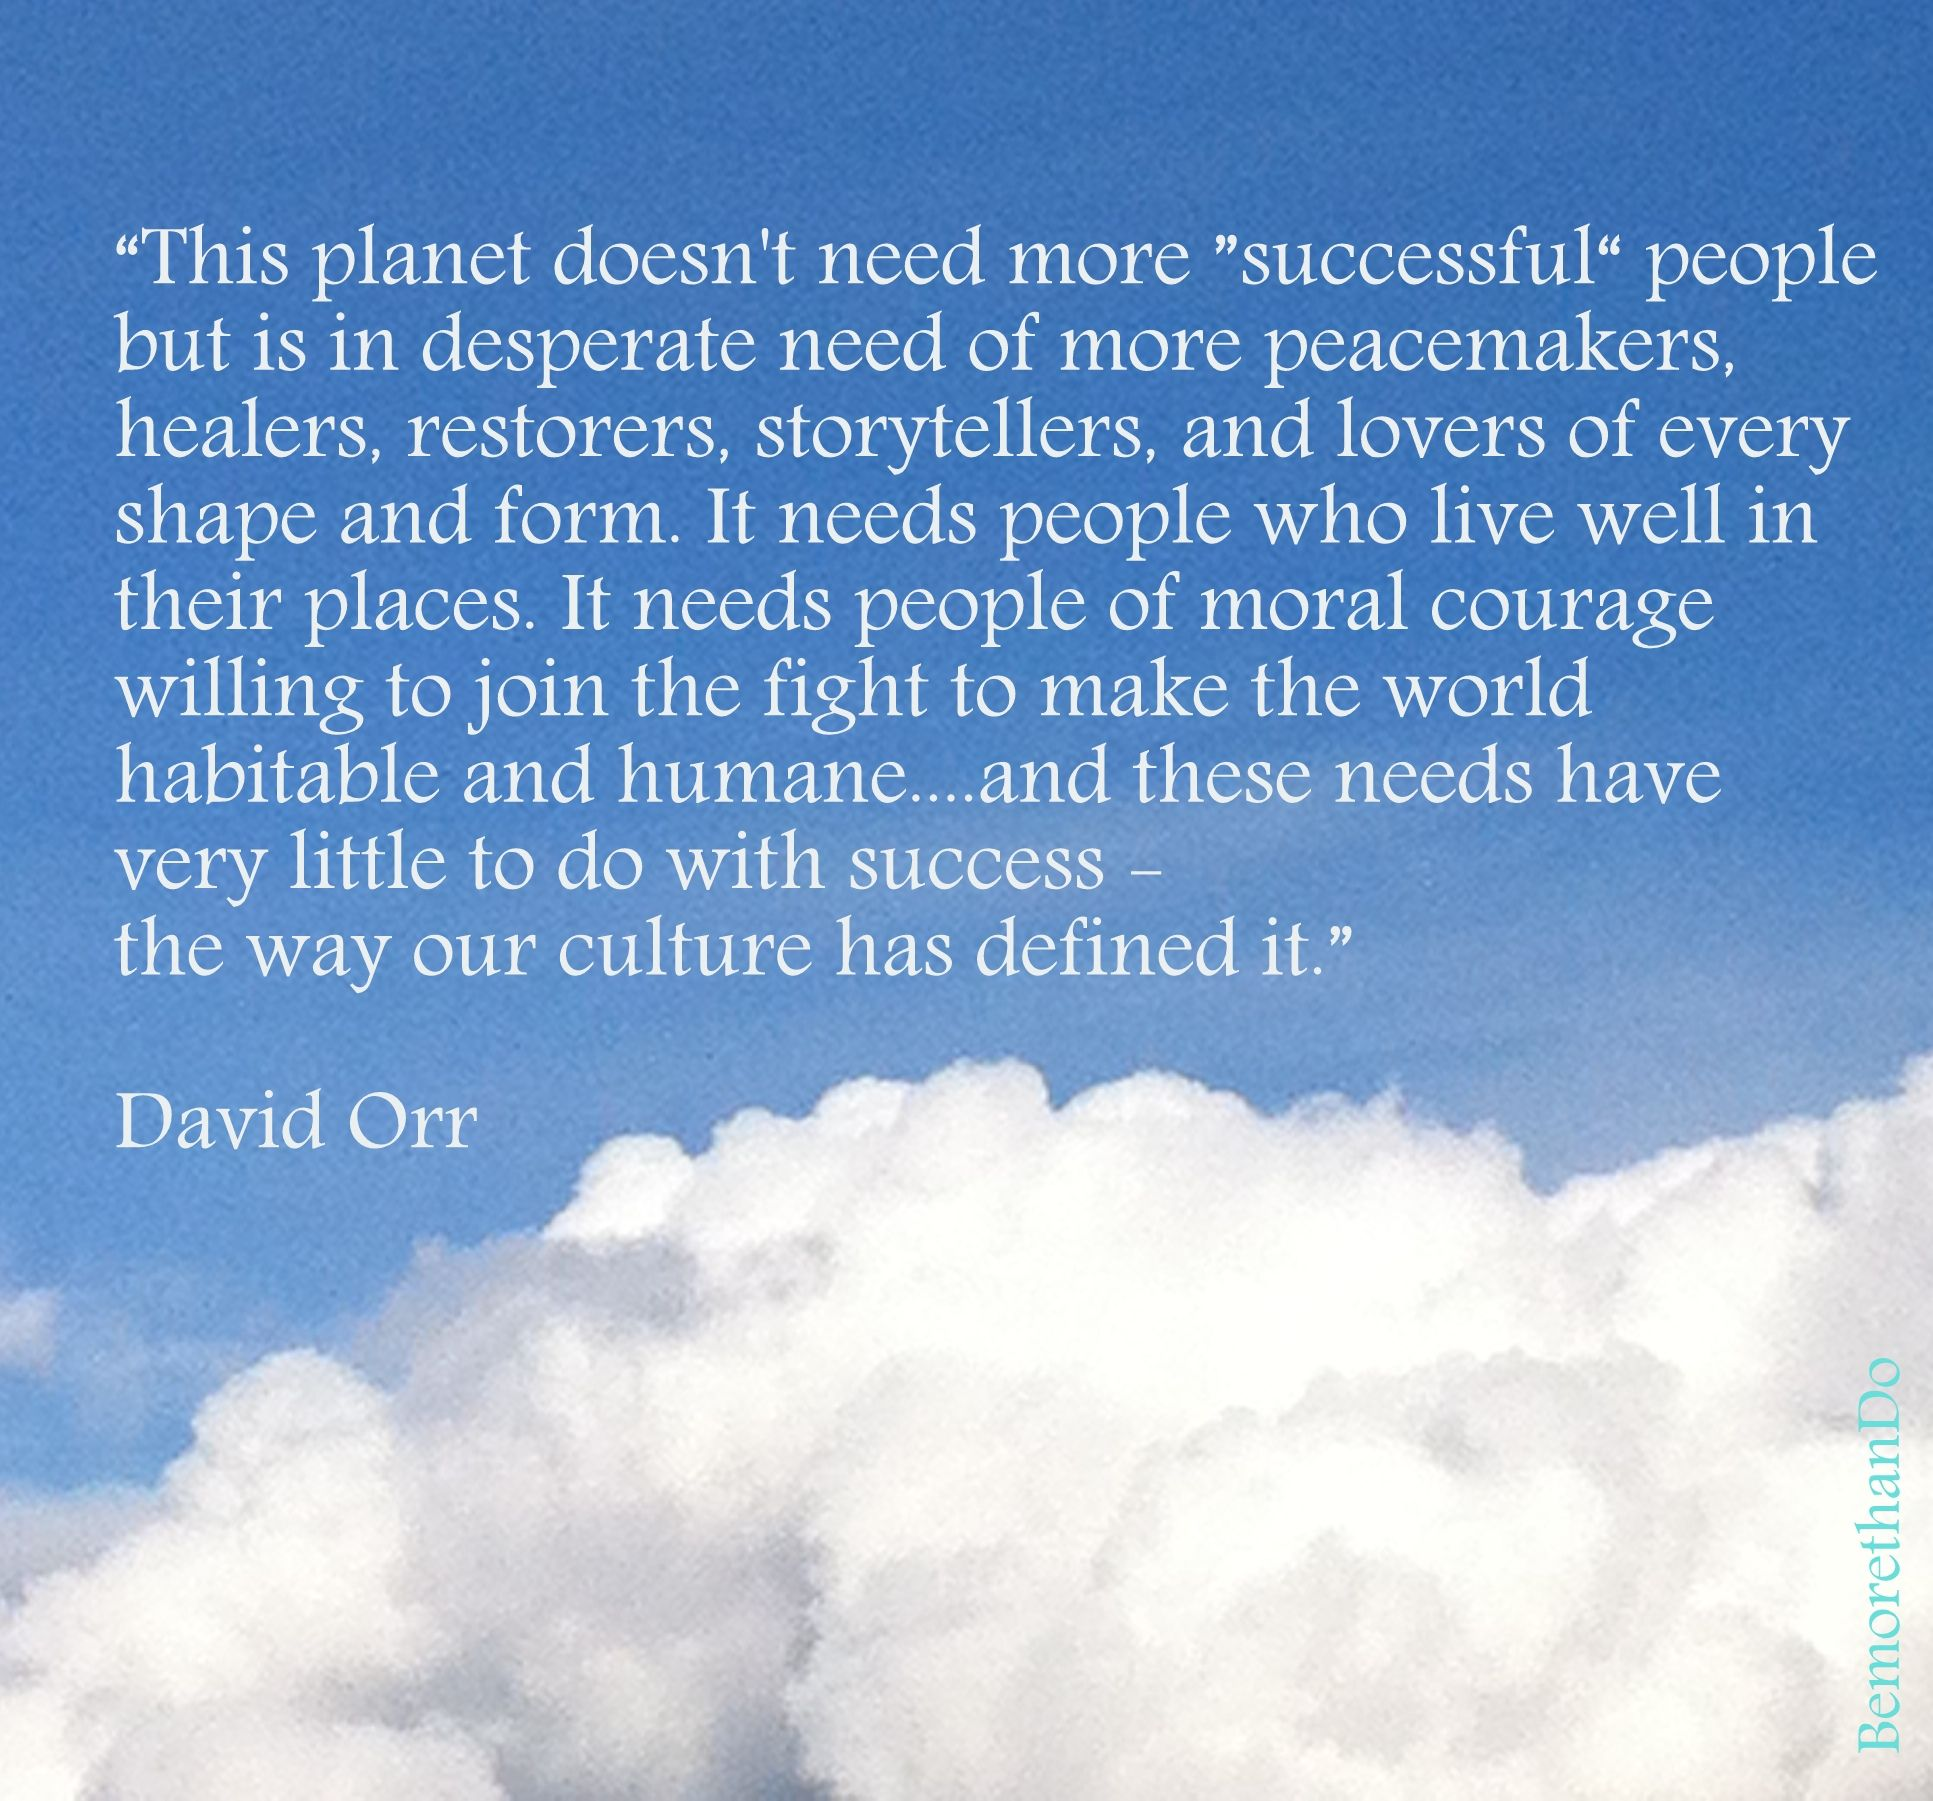 this planet doesn't need more 'successful' people...... David Orr